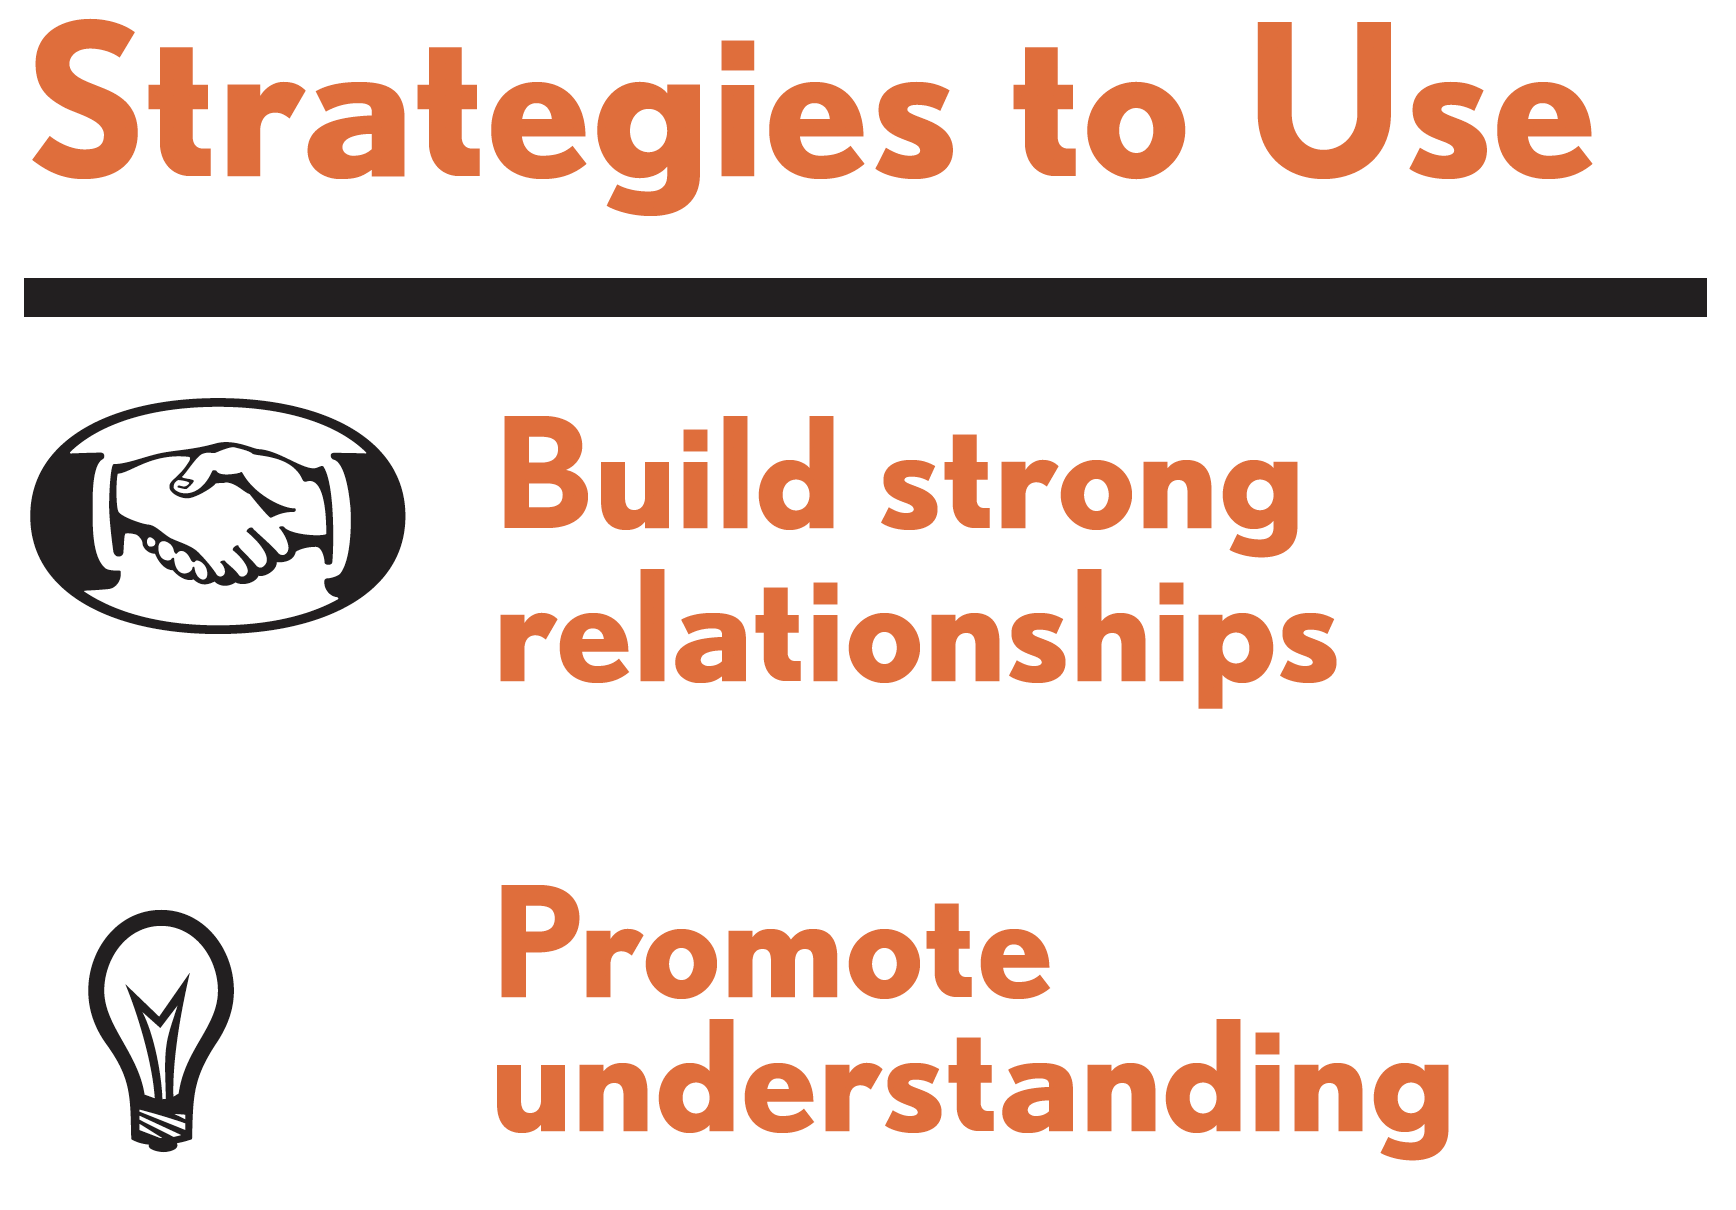 Pictures of strategies to use for this tactic. Strategies include: build strong relationships; and promote understanding.